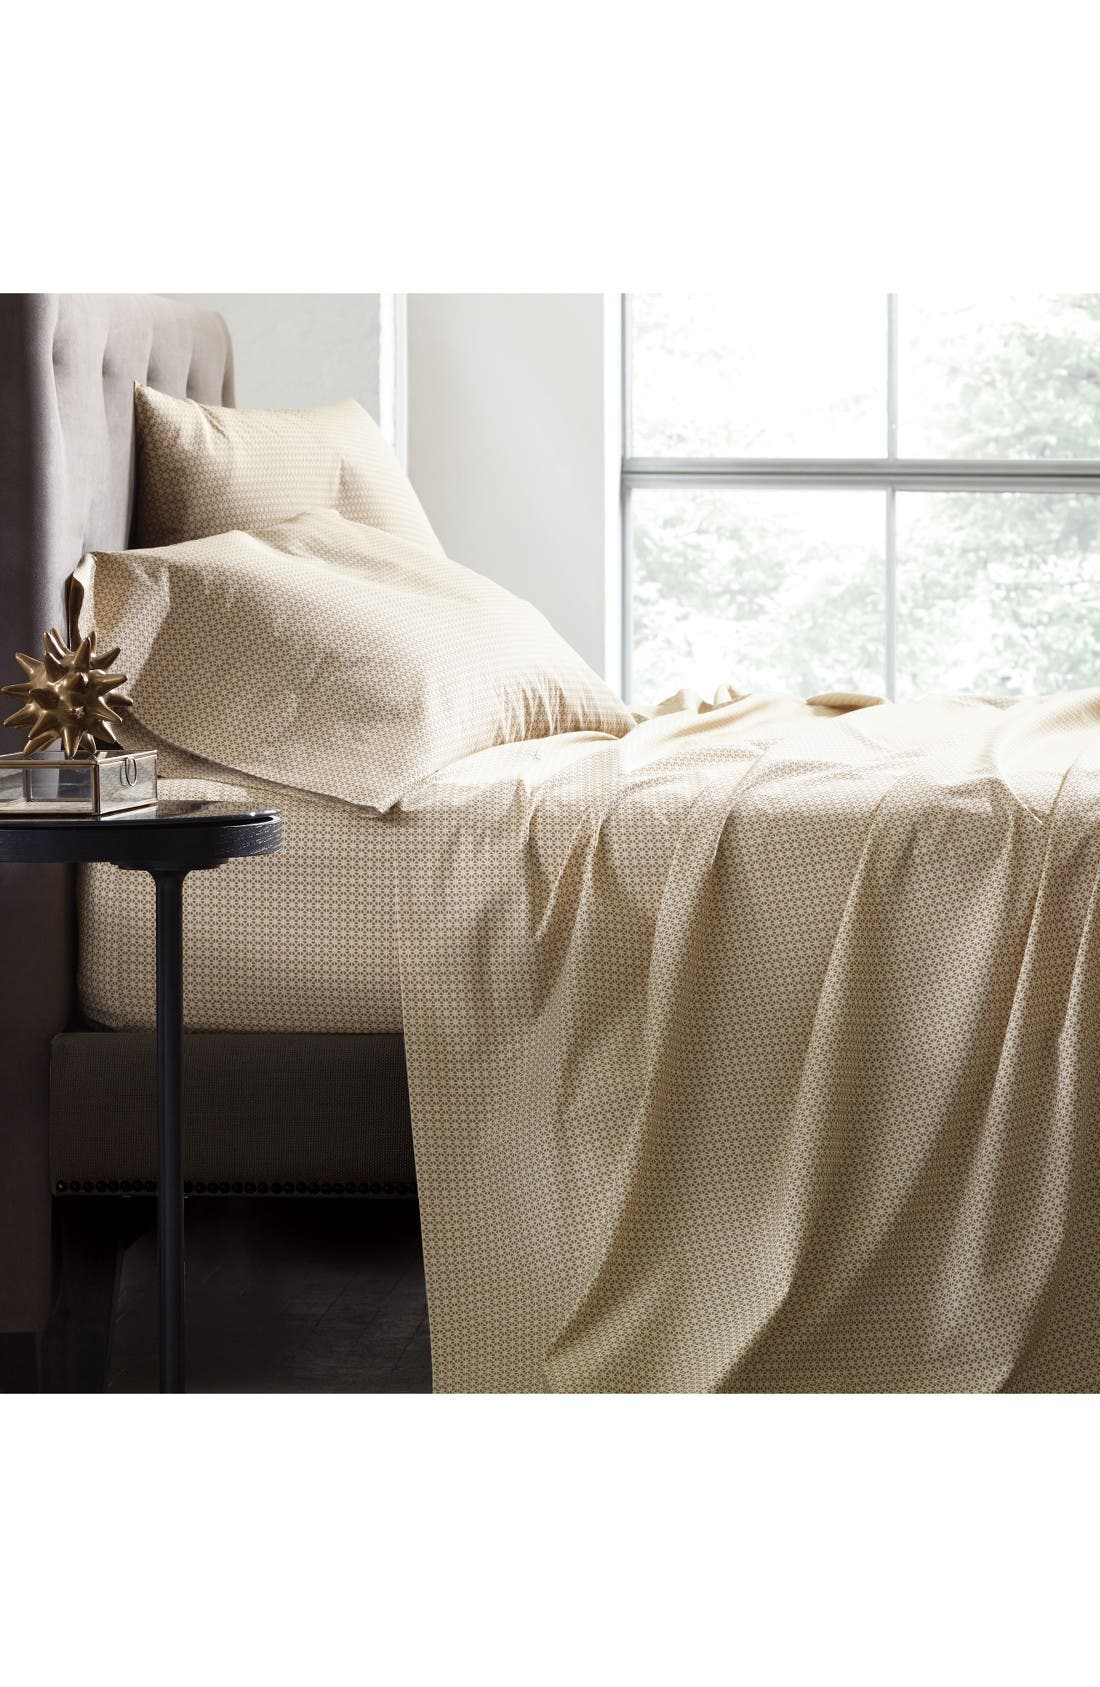 DWELLSTUDIO Fez Ochre 200 Thread Count Sheet Set